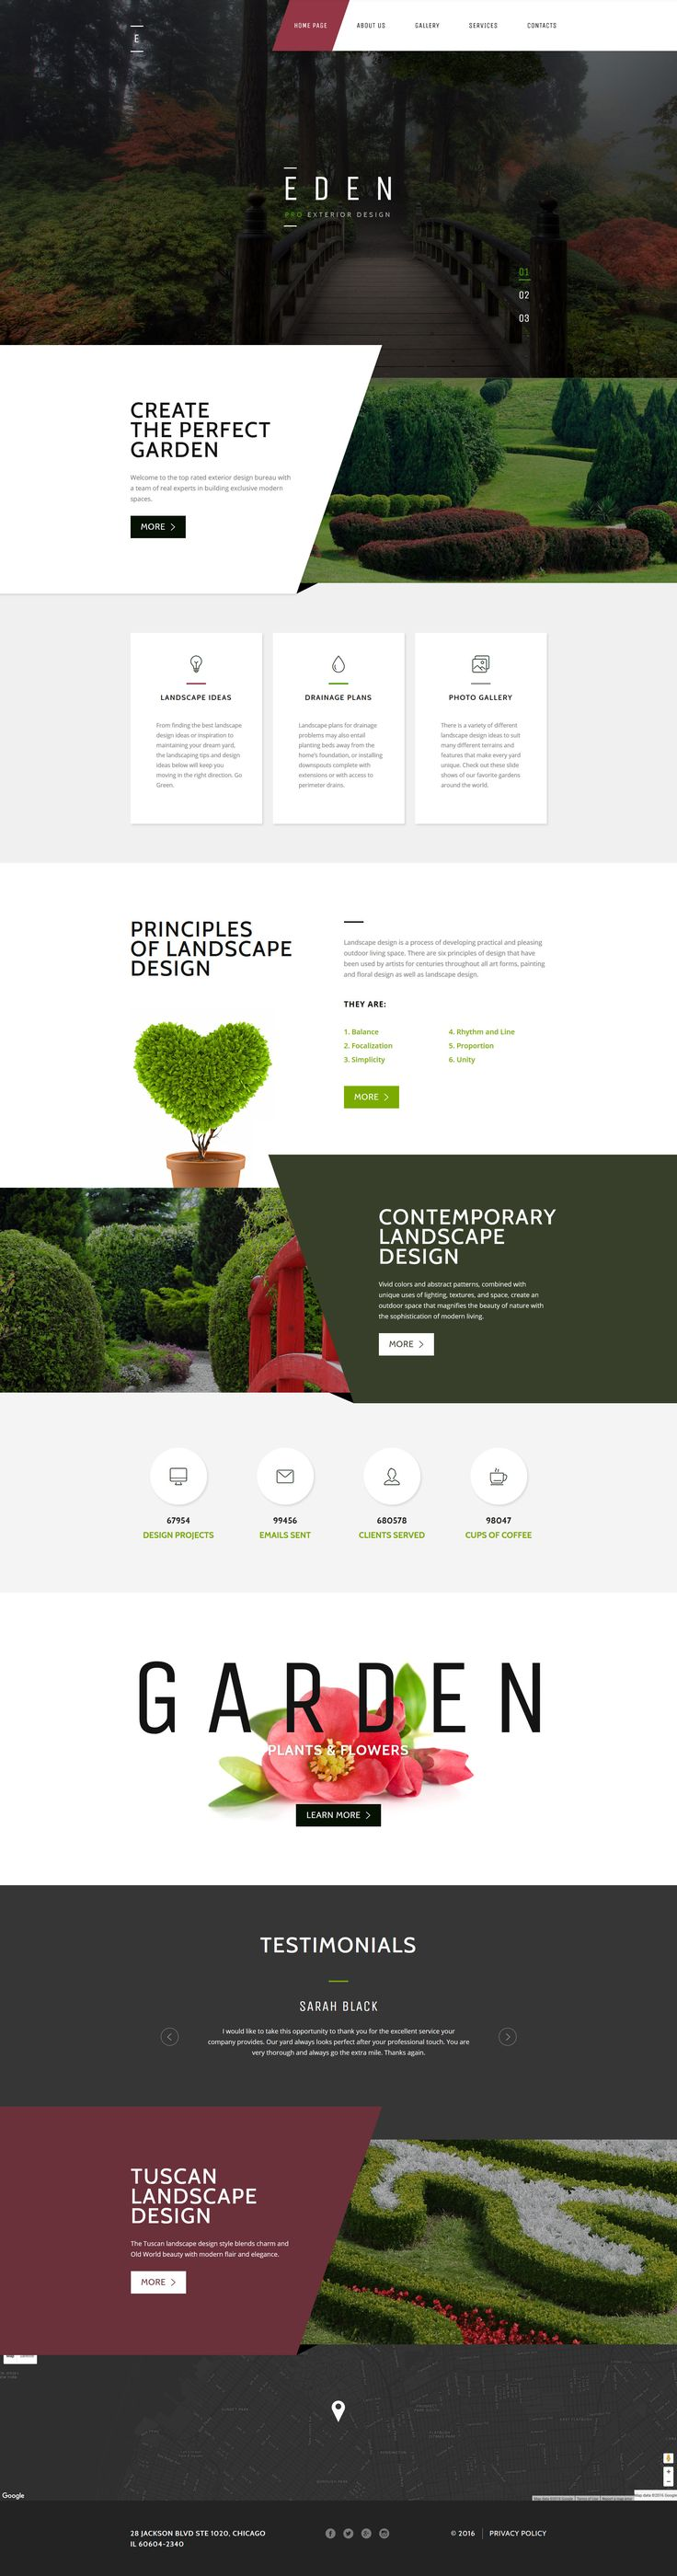 Garden Design Responsive Website Template #58440 http://www.templatemonster.com/website-templates/garden-design-responsive-website-template-58440.html #html #html5(Fitness Inspiration Design)